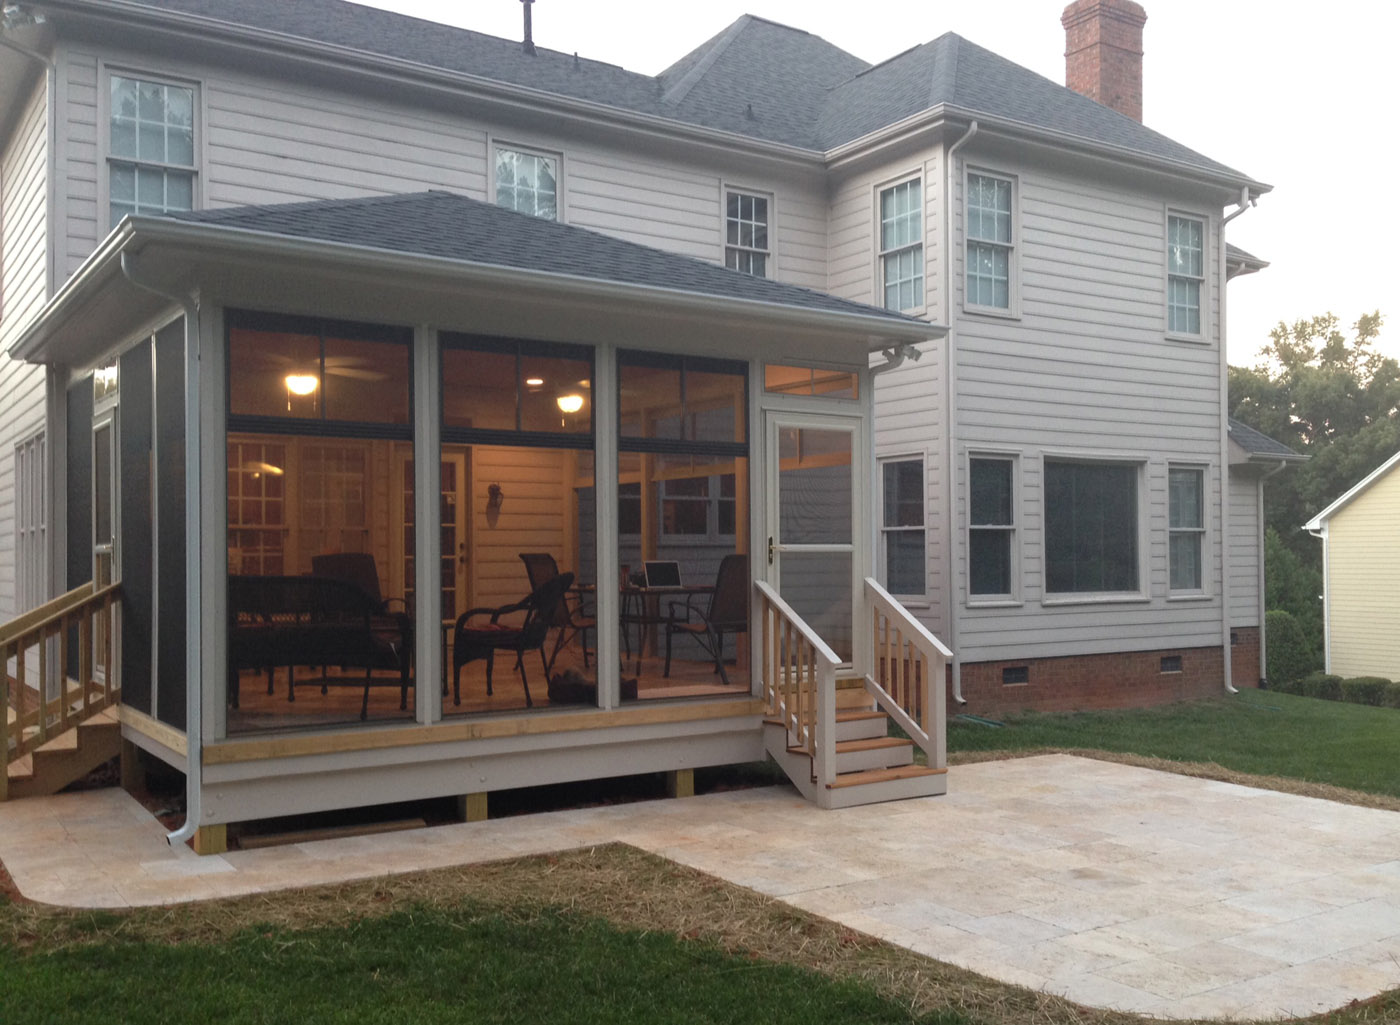 Harrisburg nc deck builder harrisburg nc porch builder take a look at some of our harrisburg completed projects from our portfolio baanklon Image collections